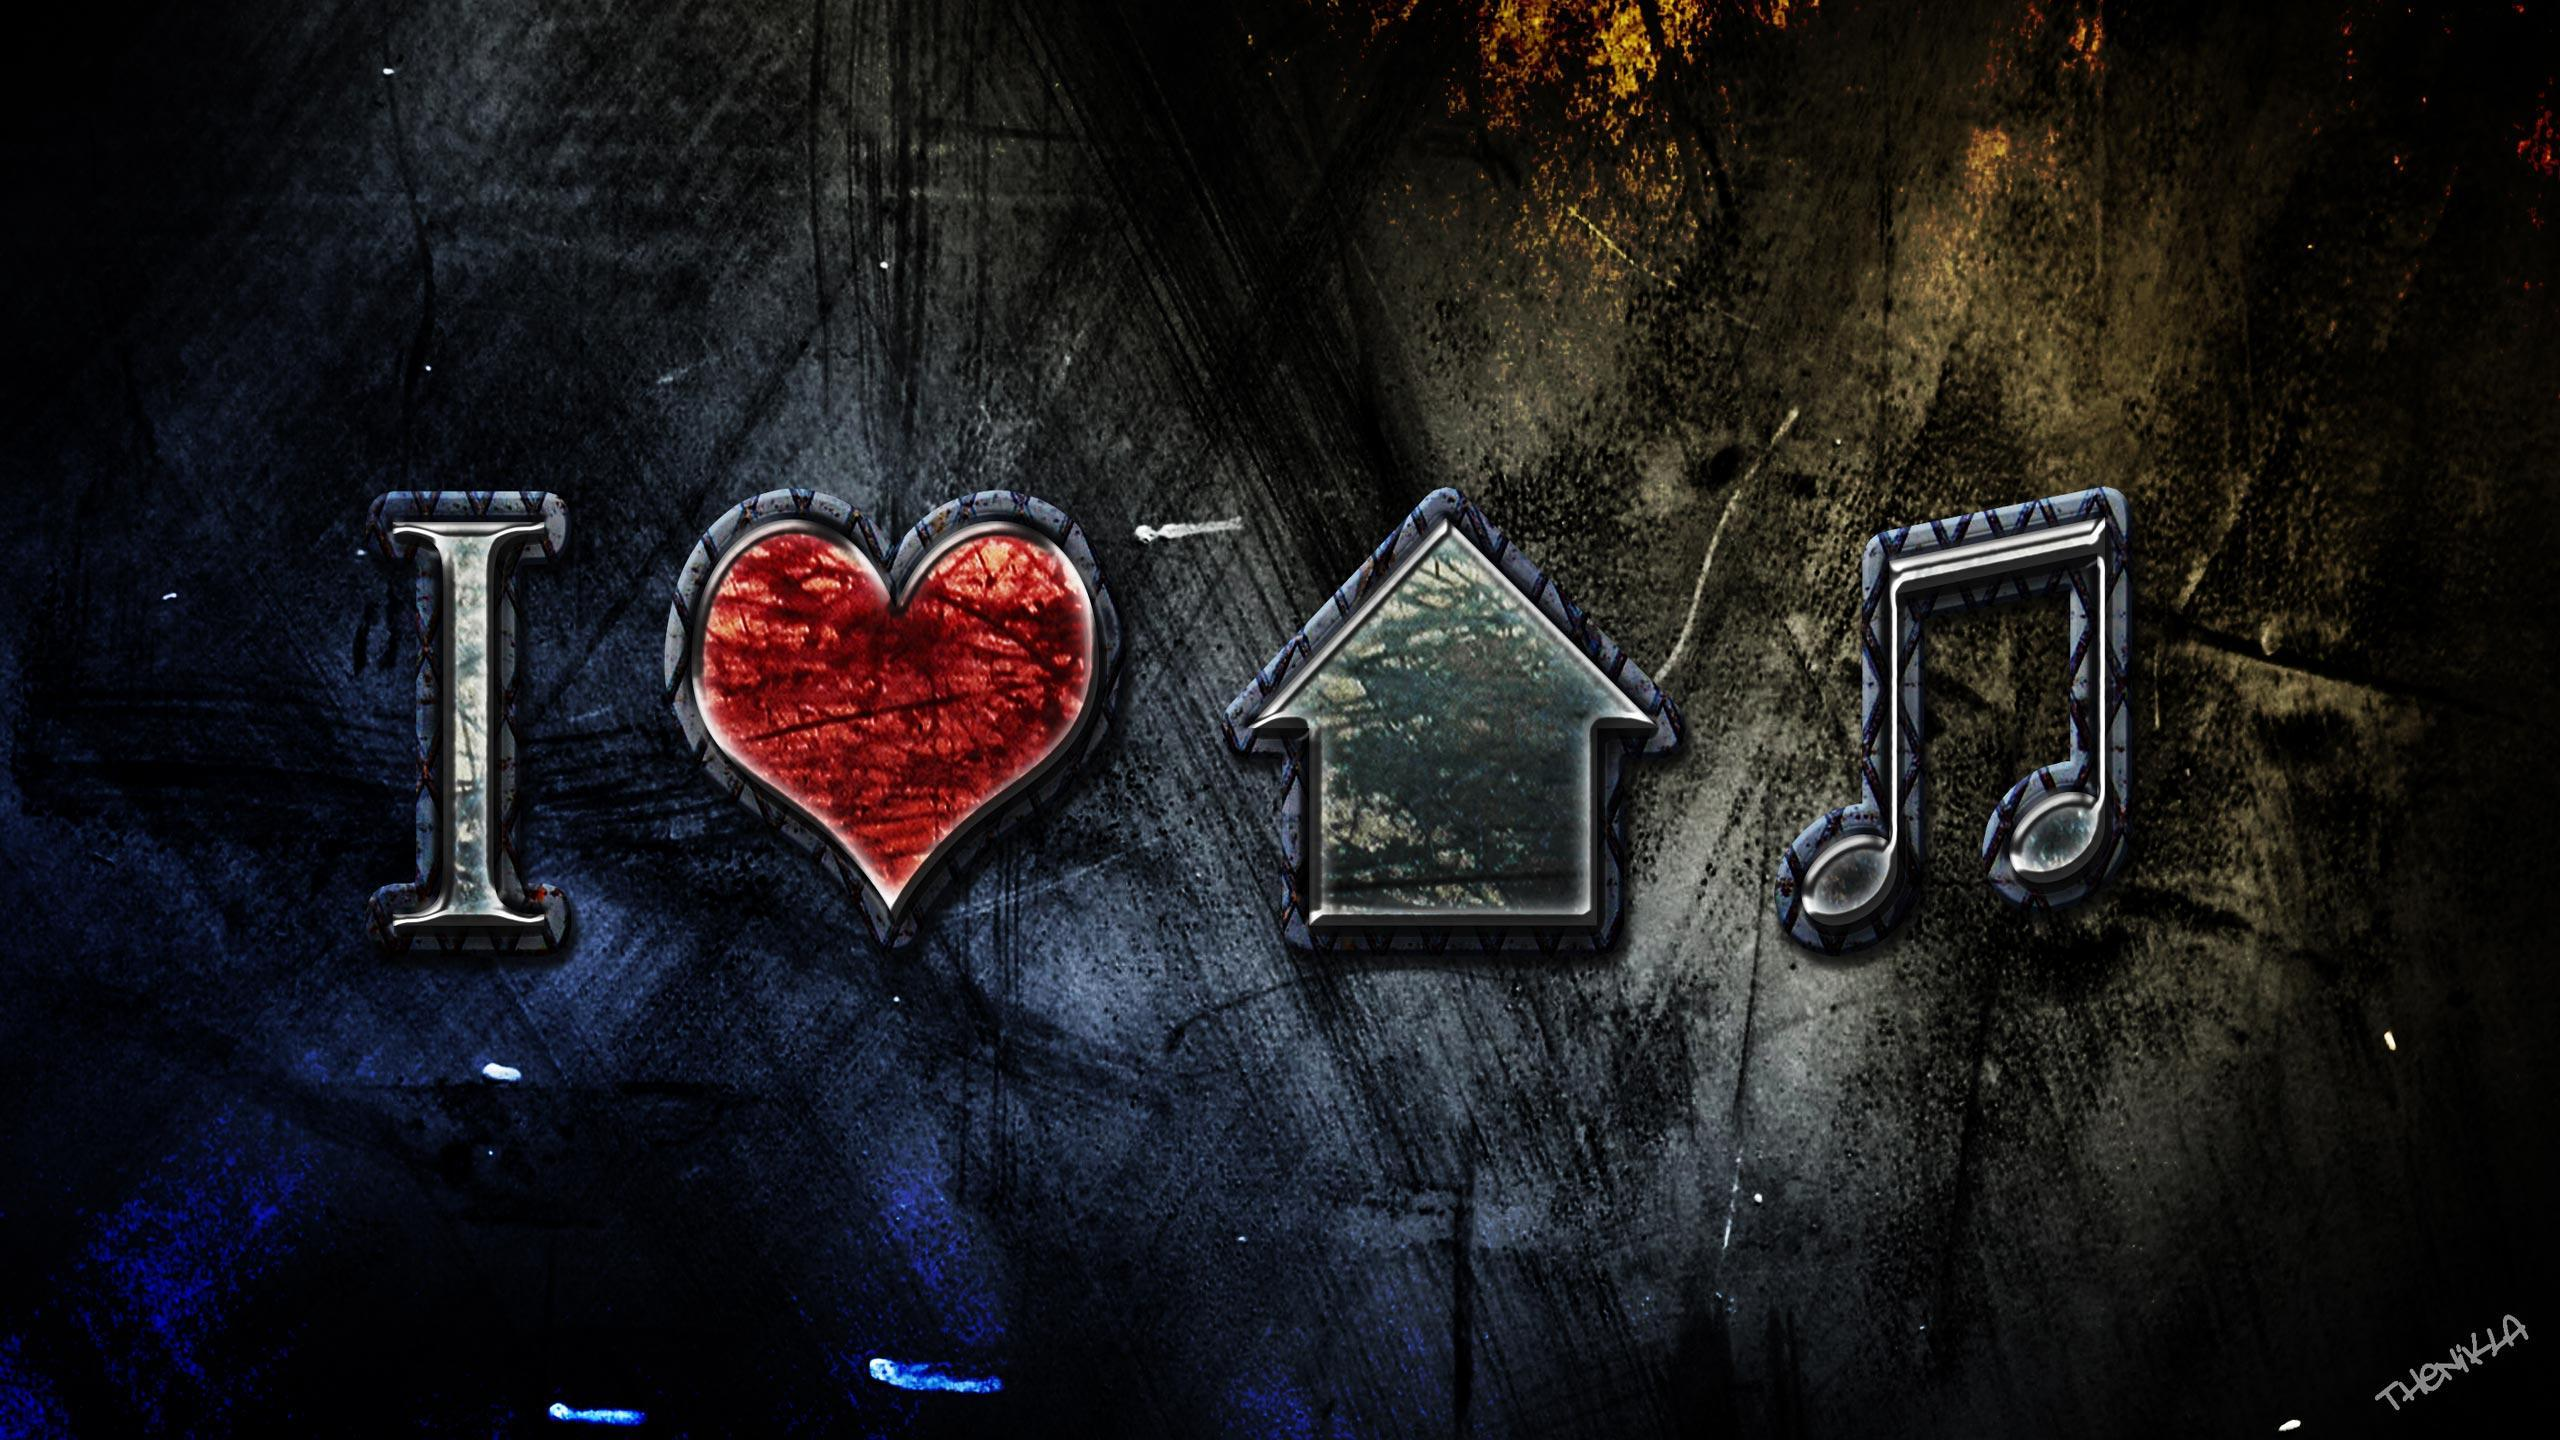 Love House Music Wallpaper - MixHD wallpapers